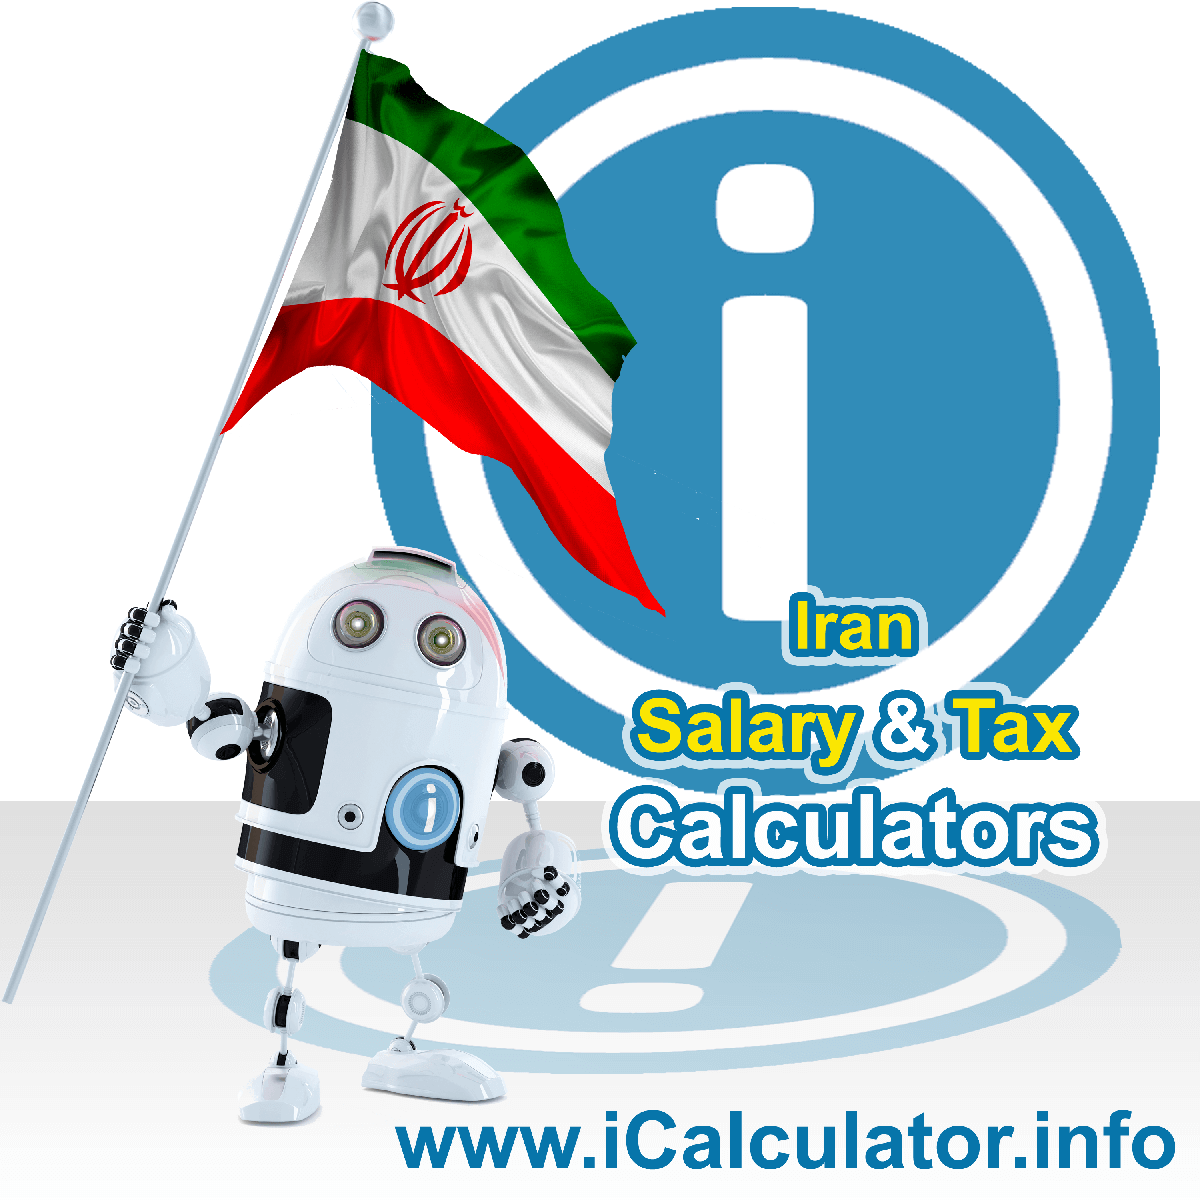 Iran Wage Calculator. This image shows the Iran flag and information relating to the tax formula for the Iran Tax Calculator